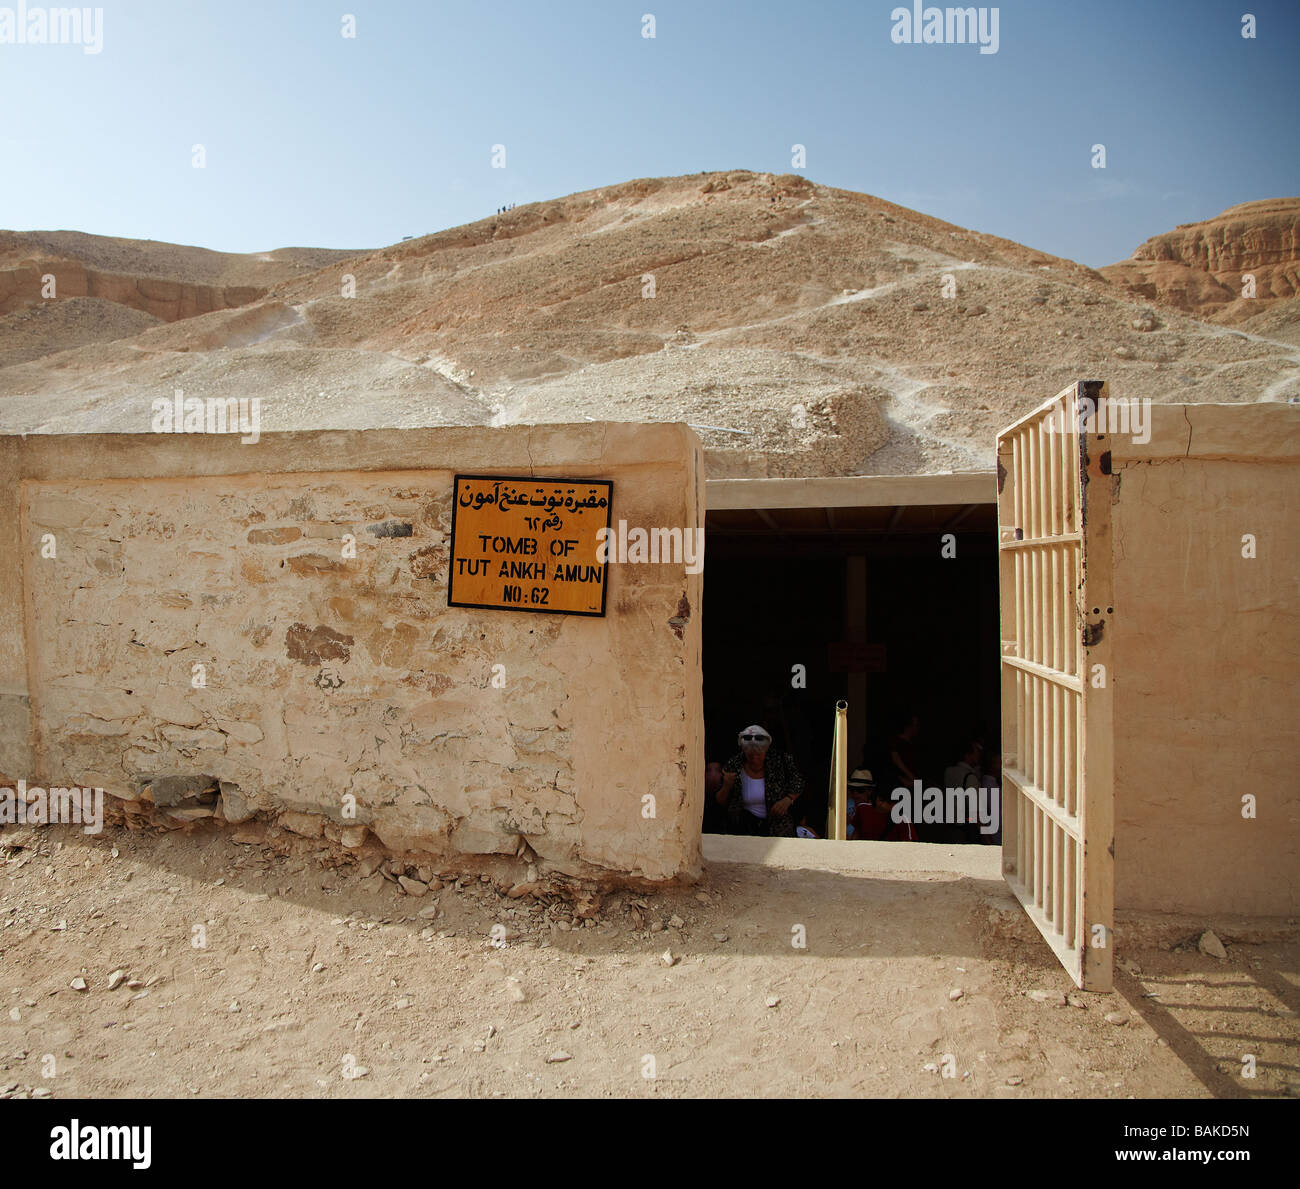 Tomb of Tut Ankh Amon in the Valley of the Kings, Luxor, Eqypt - Stock Image